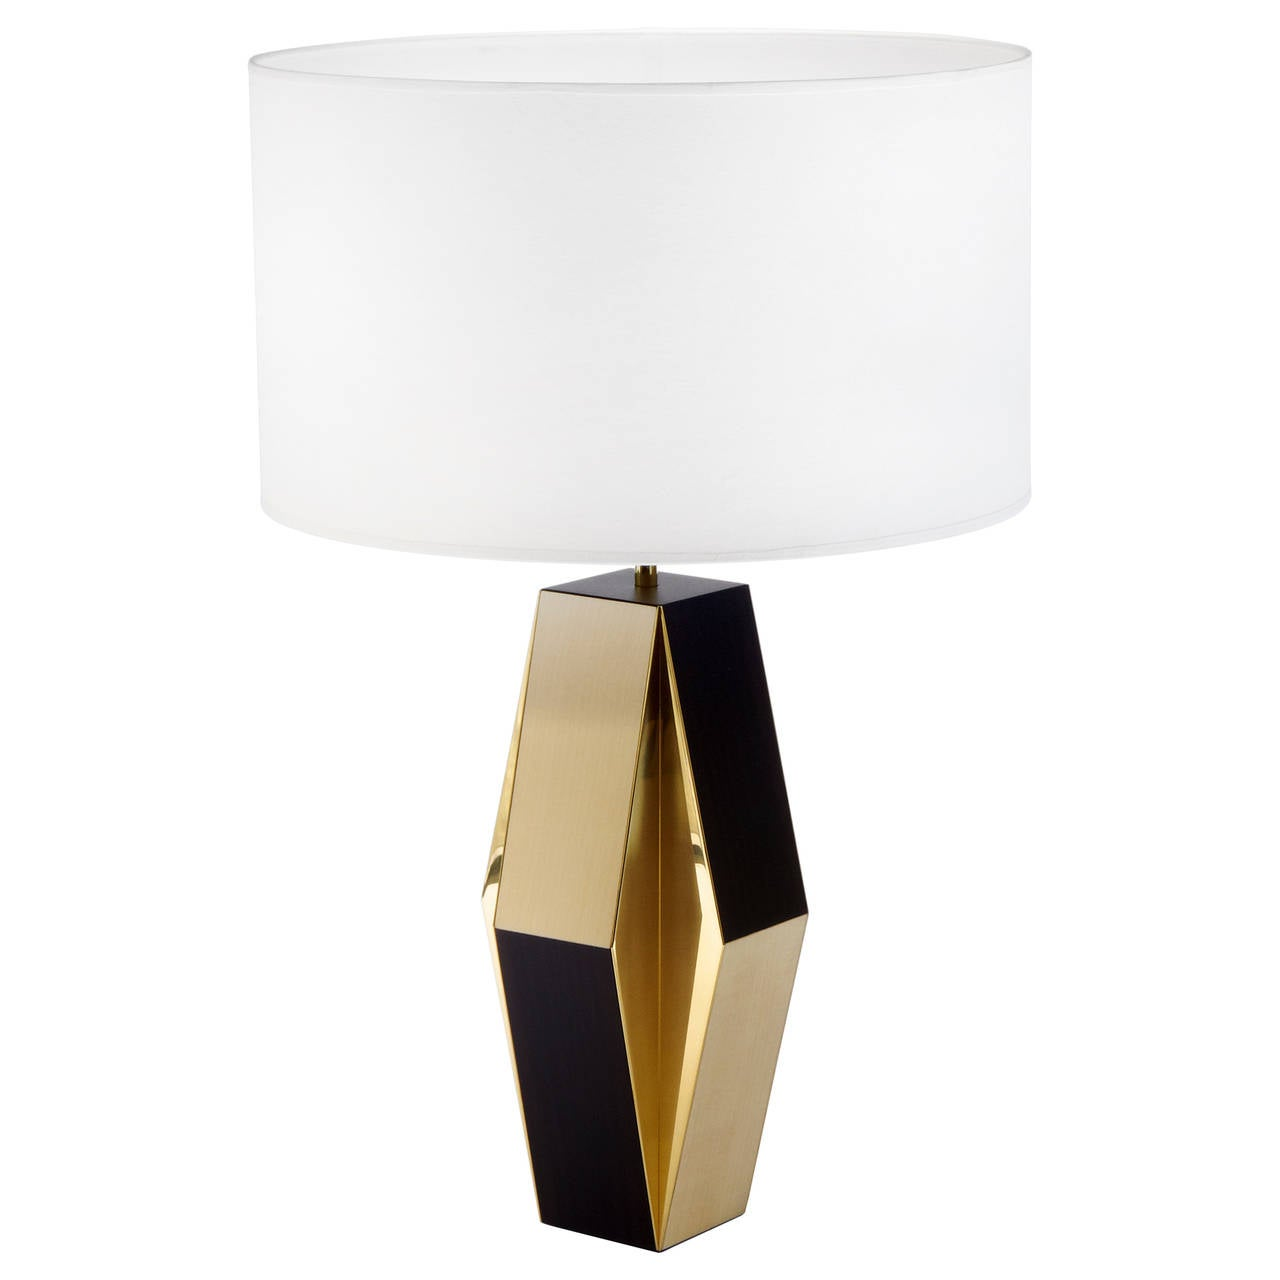 """Lamp """"Inversion"""" by Hervé Langlais for Galerie Negropontes"""